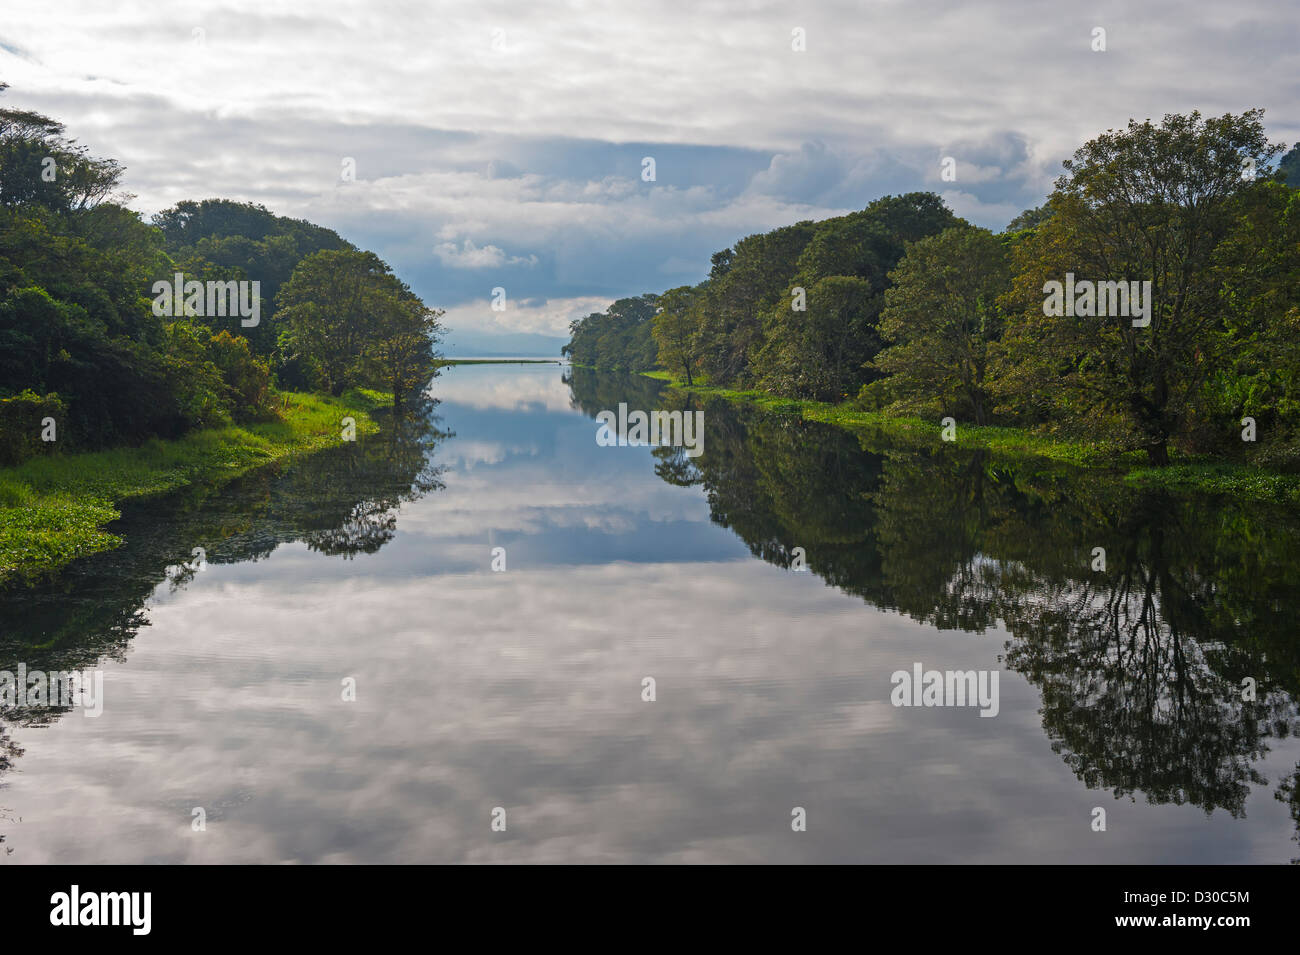 Lago de Yojoa, Lake Yojoa, Honduras, Central America Stock Photo